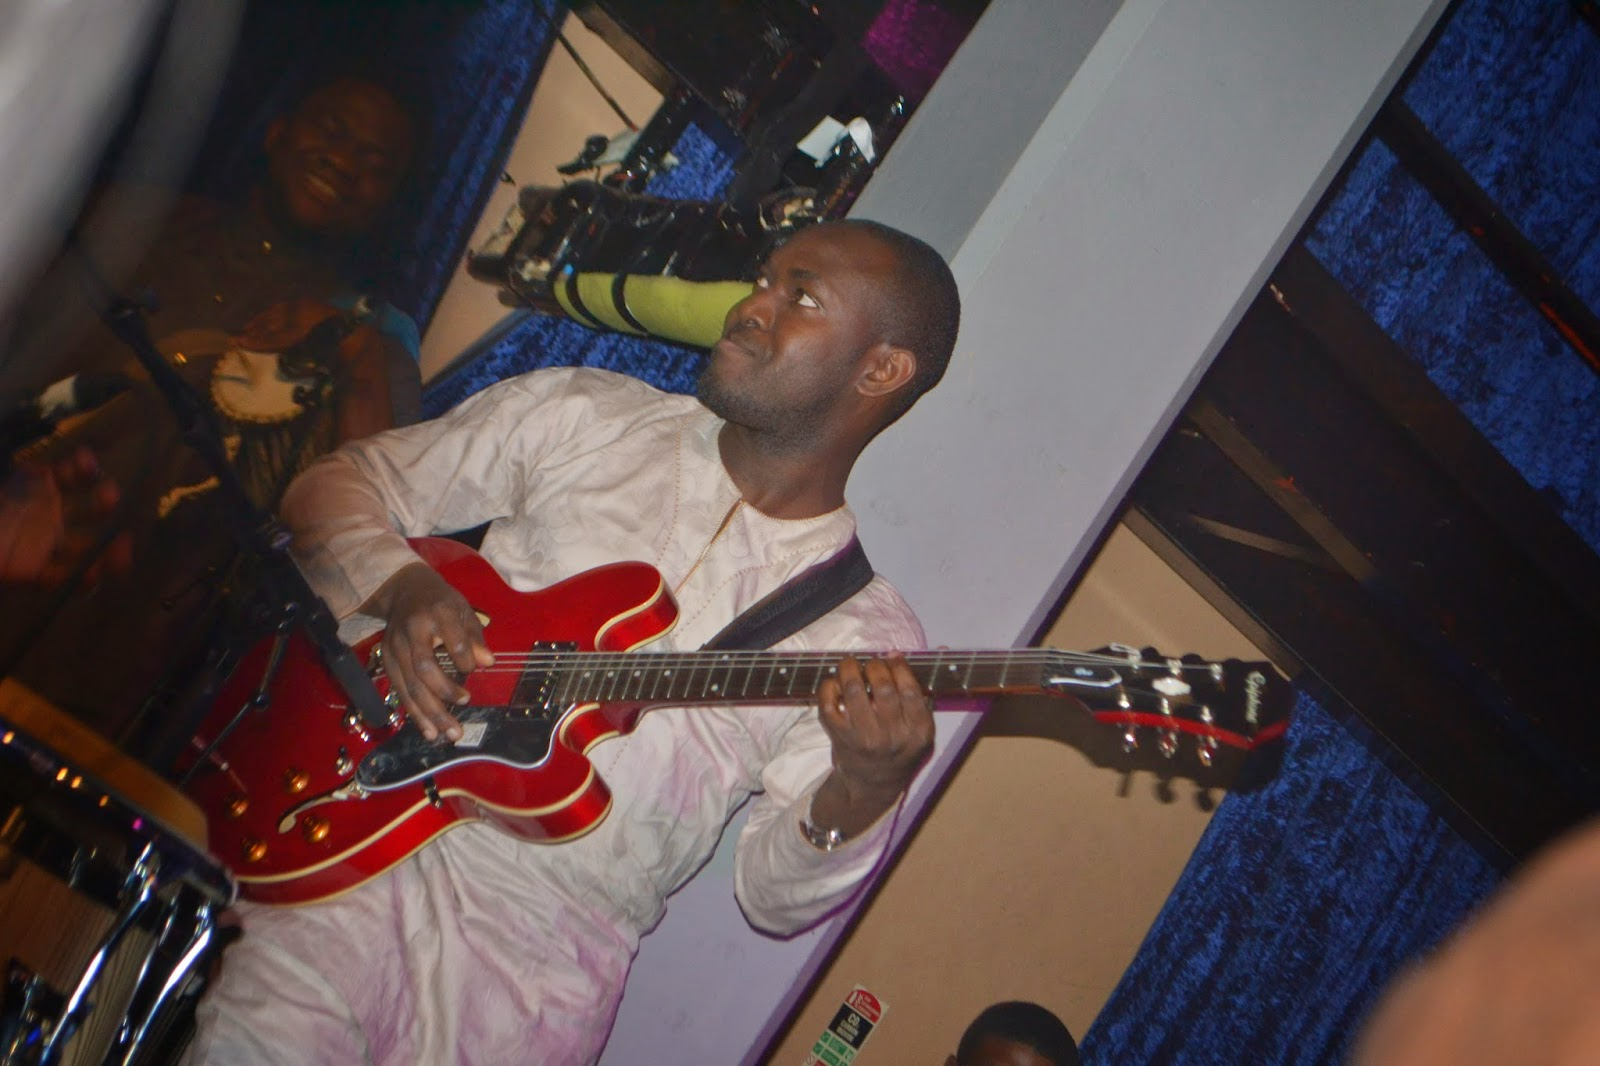 Black Guy playing a Red Guitar